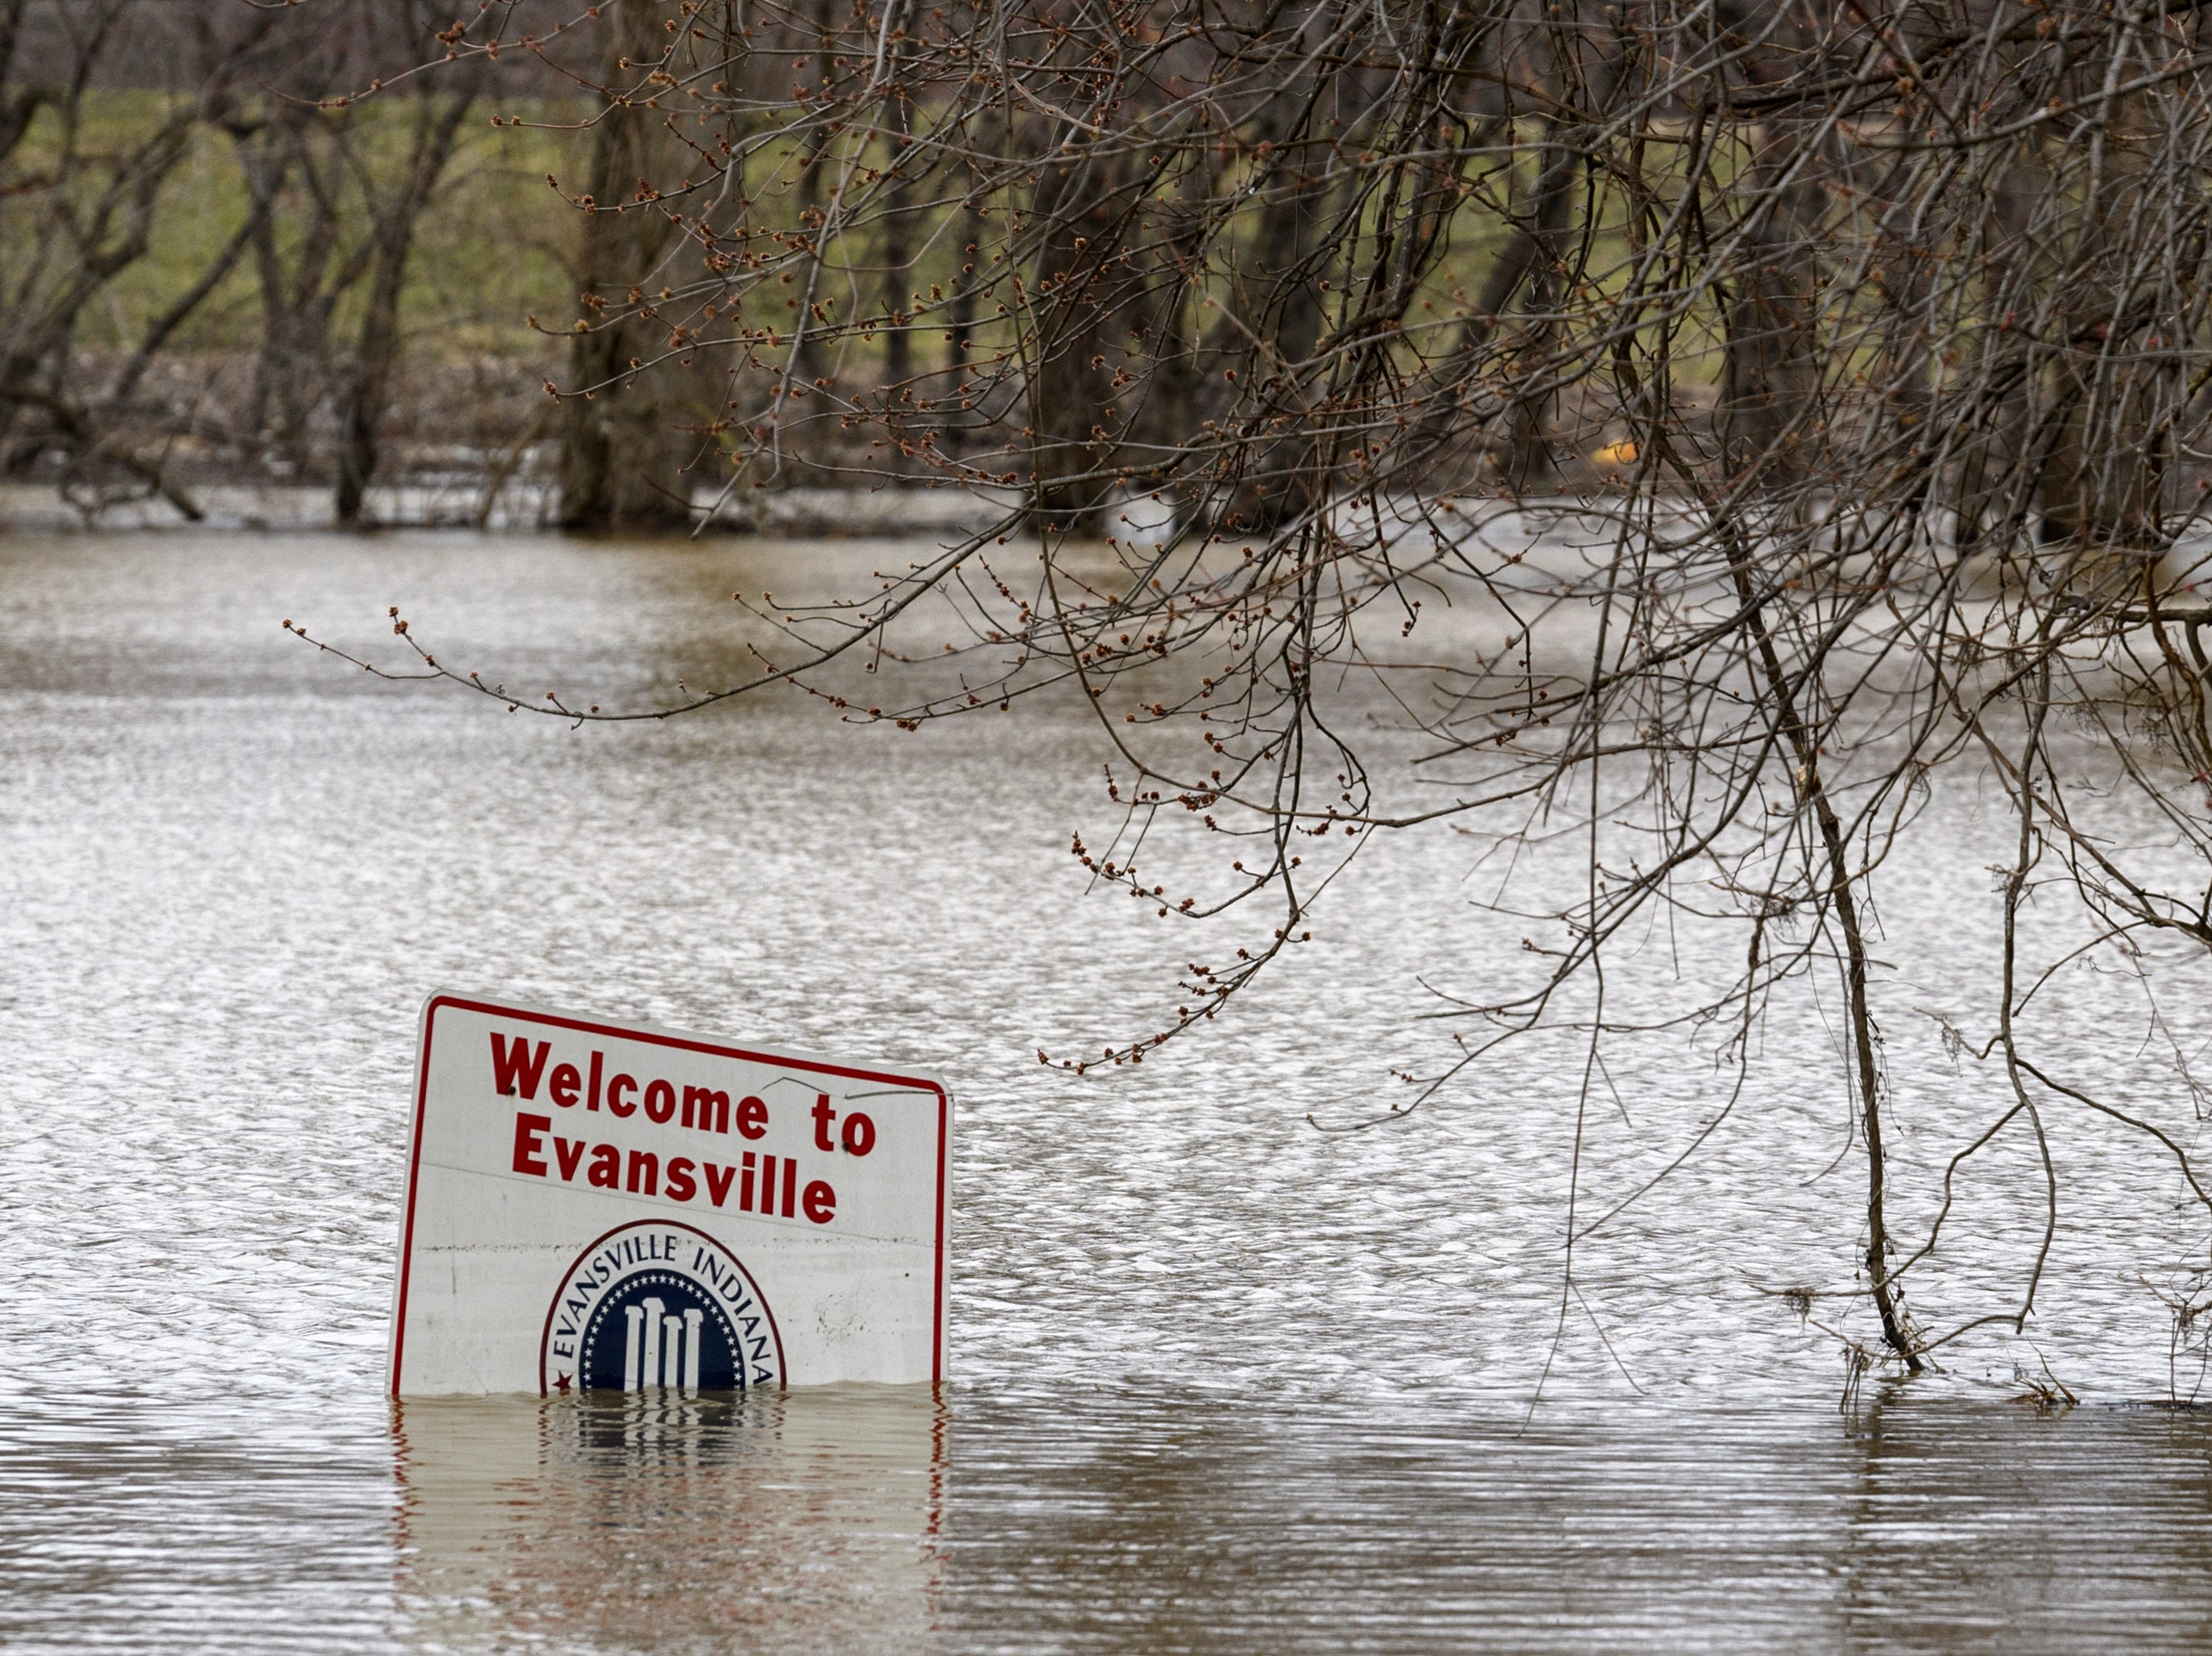 """High water reaches a """"Welcome to Evansville"""" sign seen along Waterworks Road in Evansville, Tuesday afternoon, Feb. 19, 2019."""